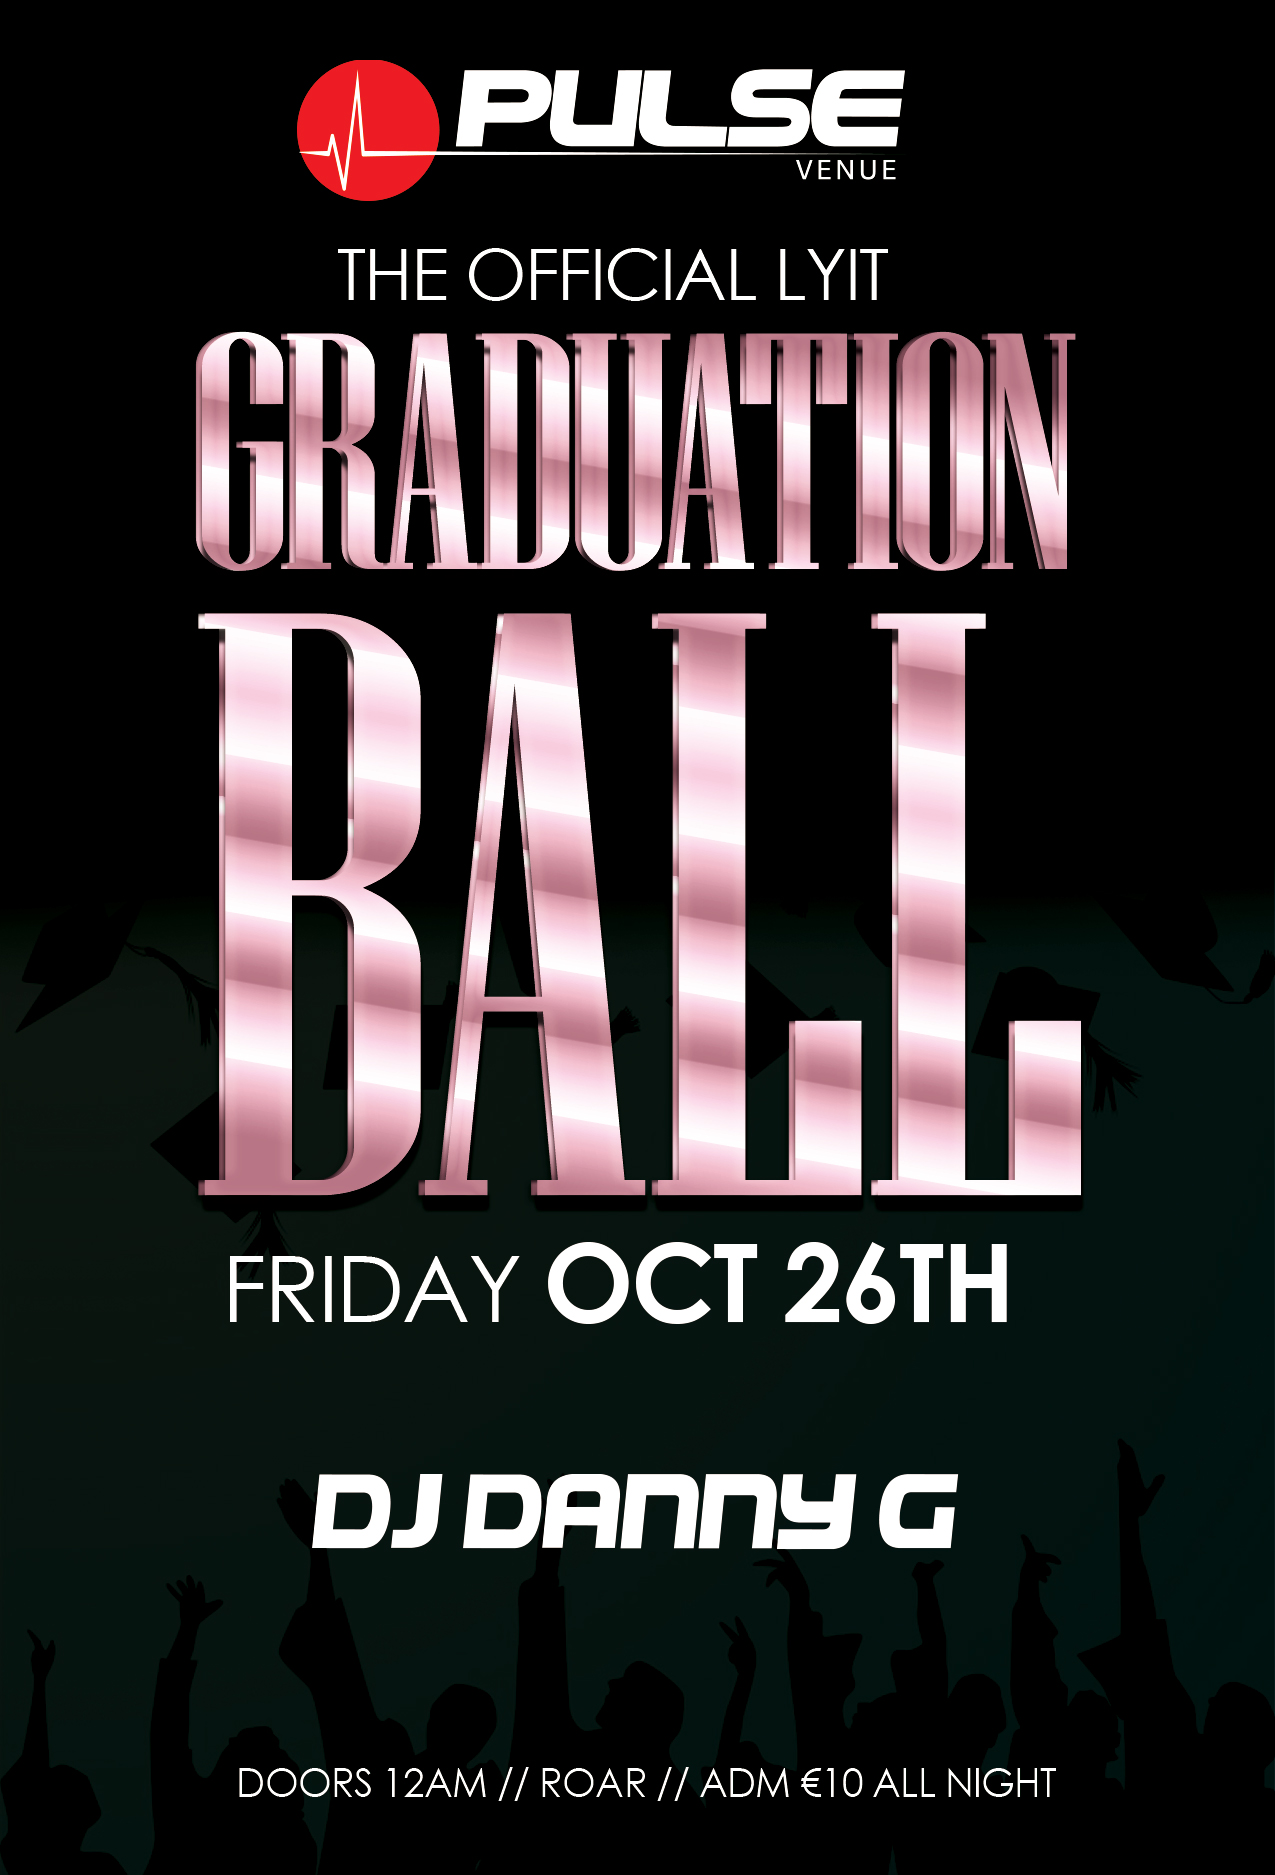 pulse---graduation-ball---danny-g---fri-oct-26-20187.jpg